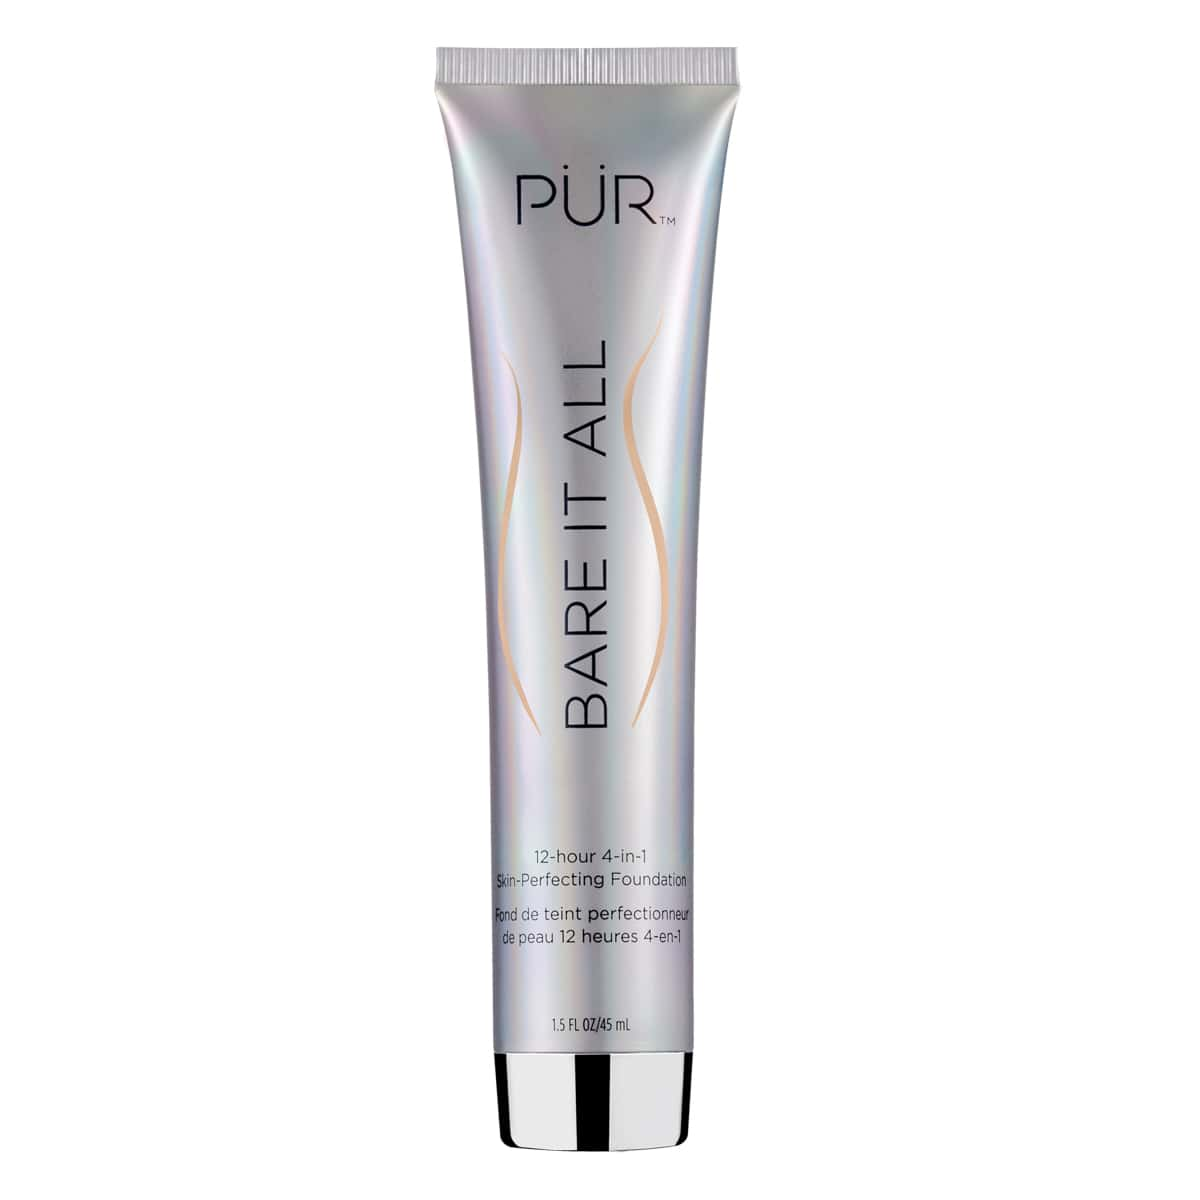 Bare It All 12 Hour 4 In 1 Skin Perfecting Foundation - Light Tan